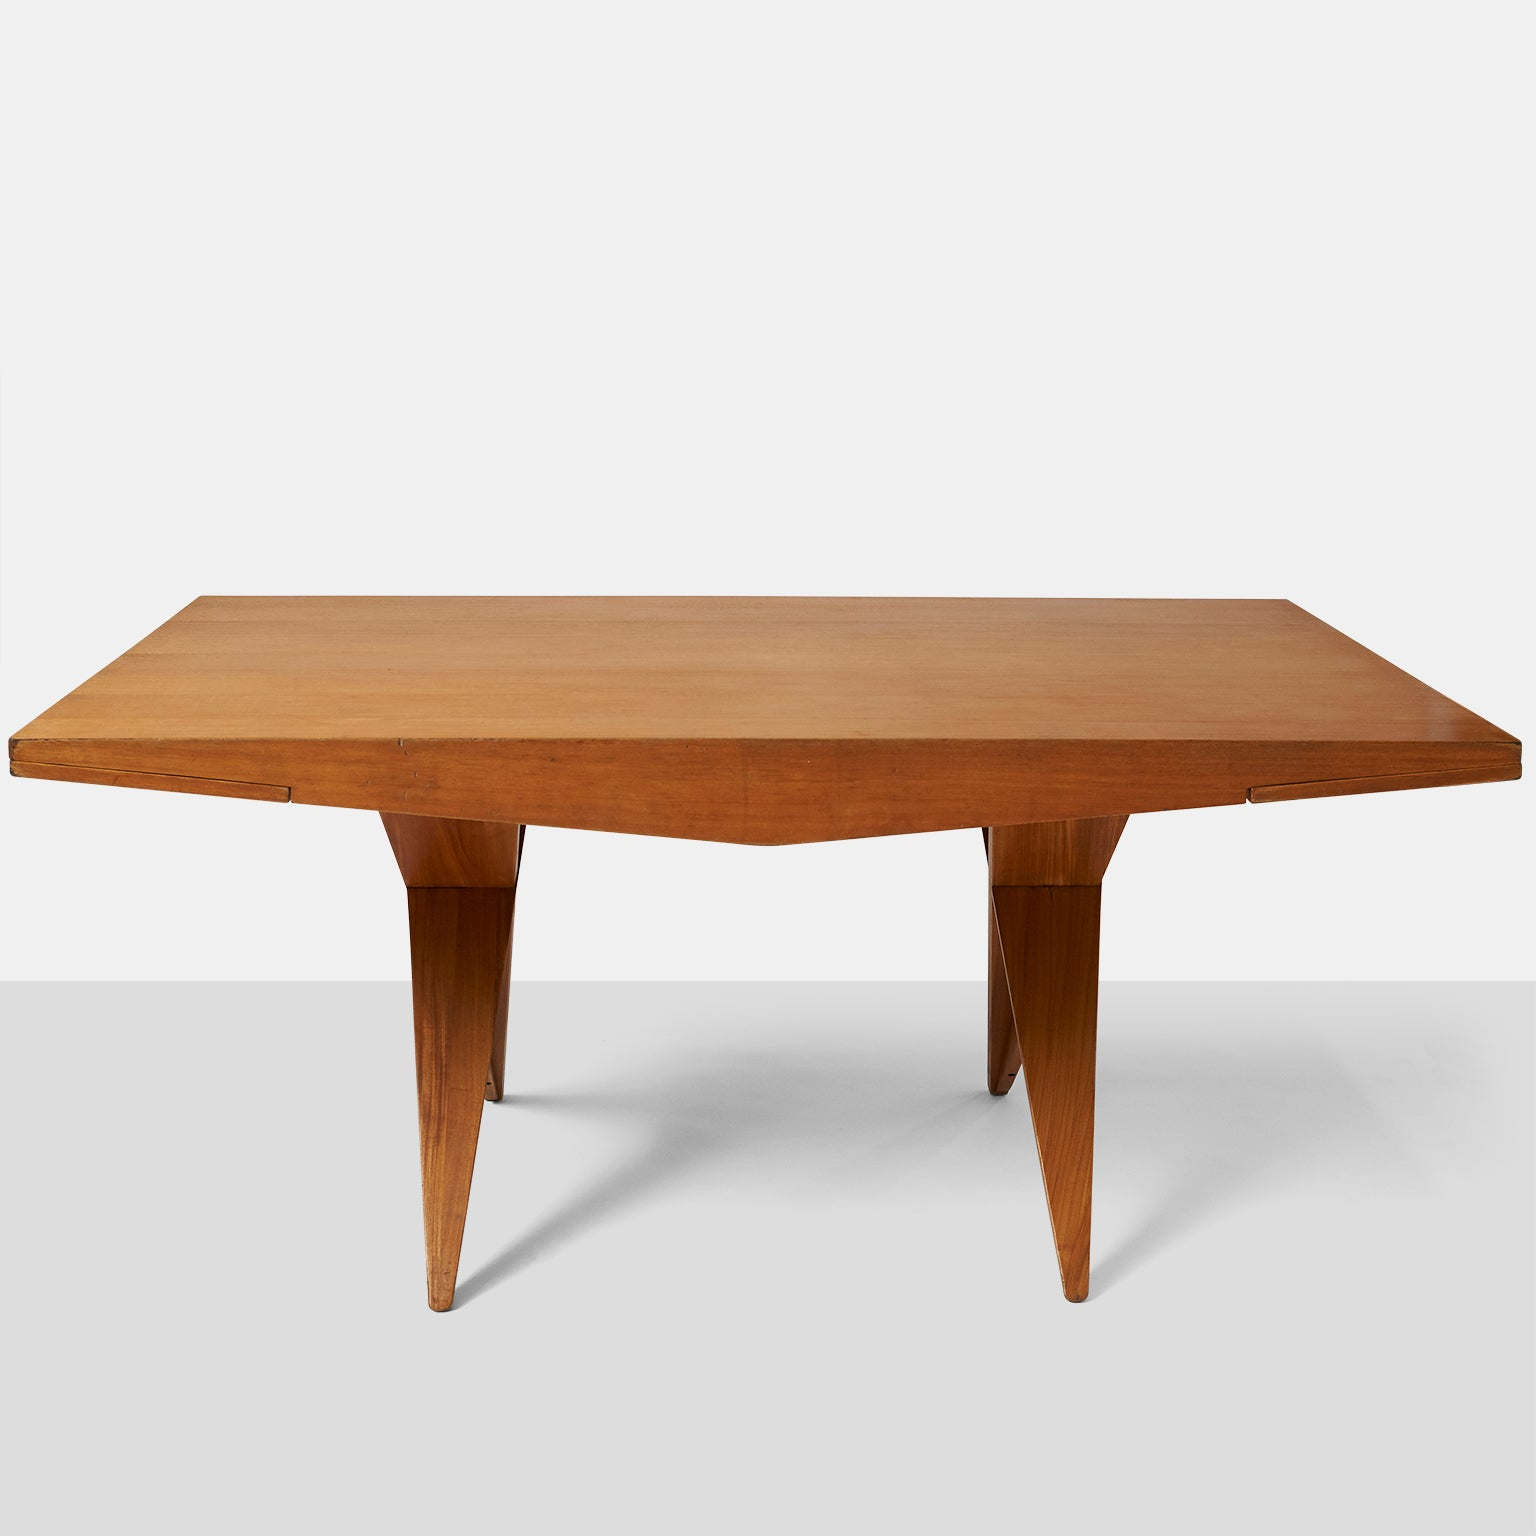 Dan Johnson Dining Table For Most Current Johnson Round Pedestal Dining Tables (View 23 of 25)